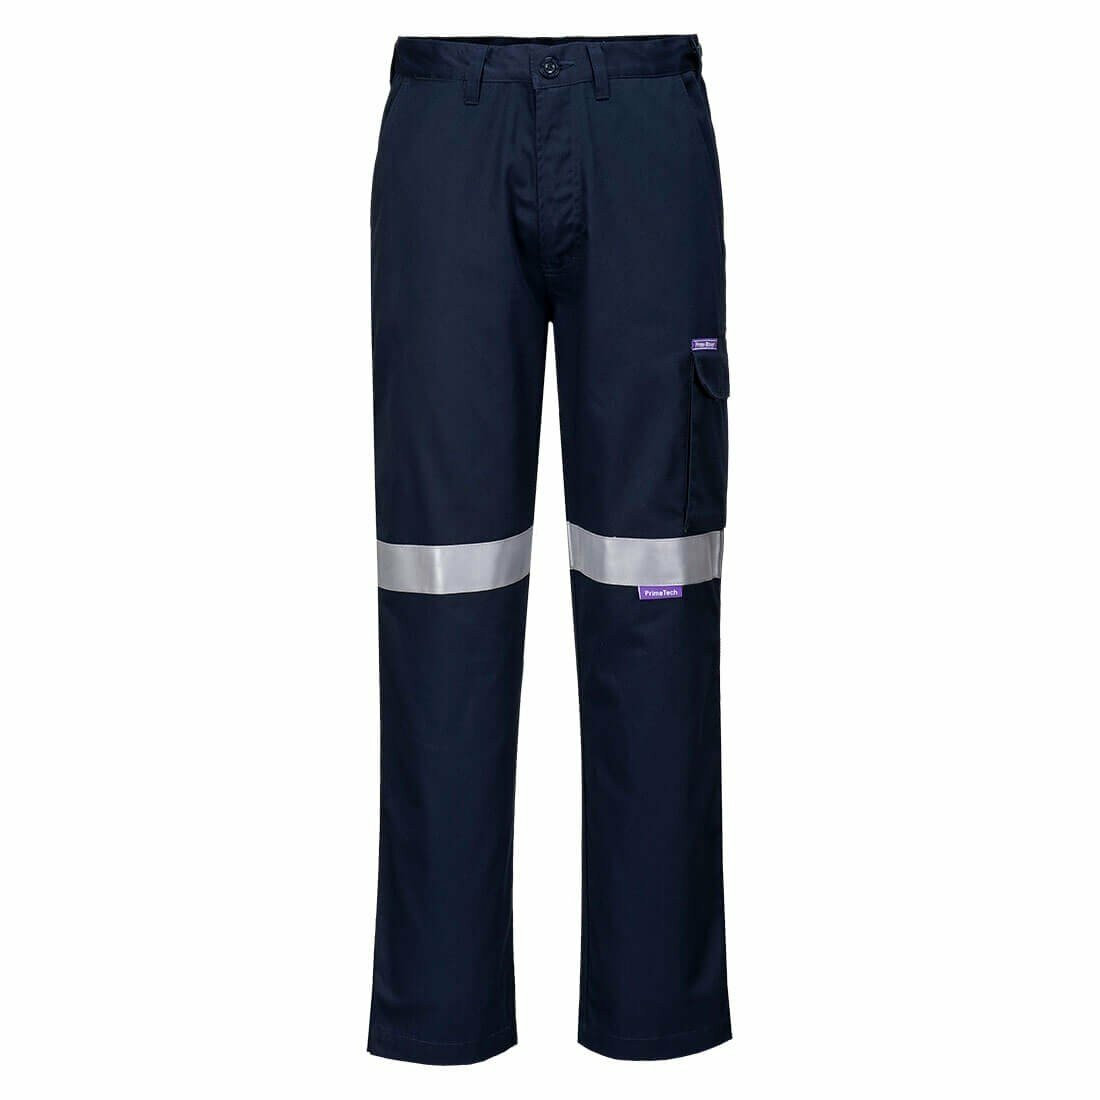 MW701 Flame Resistant Cargo Pants with Tape